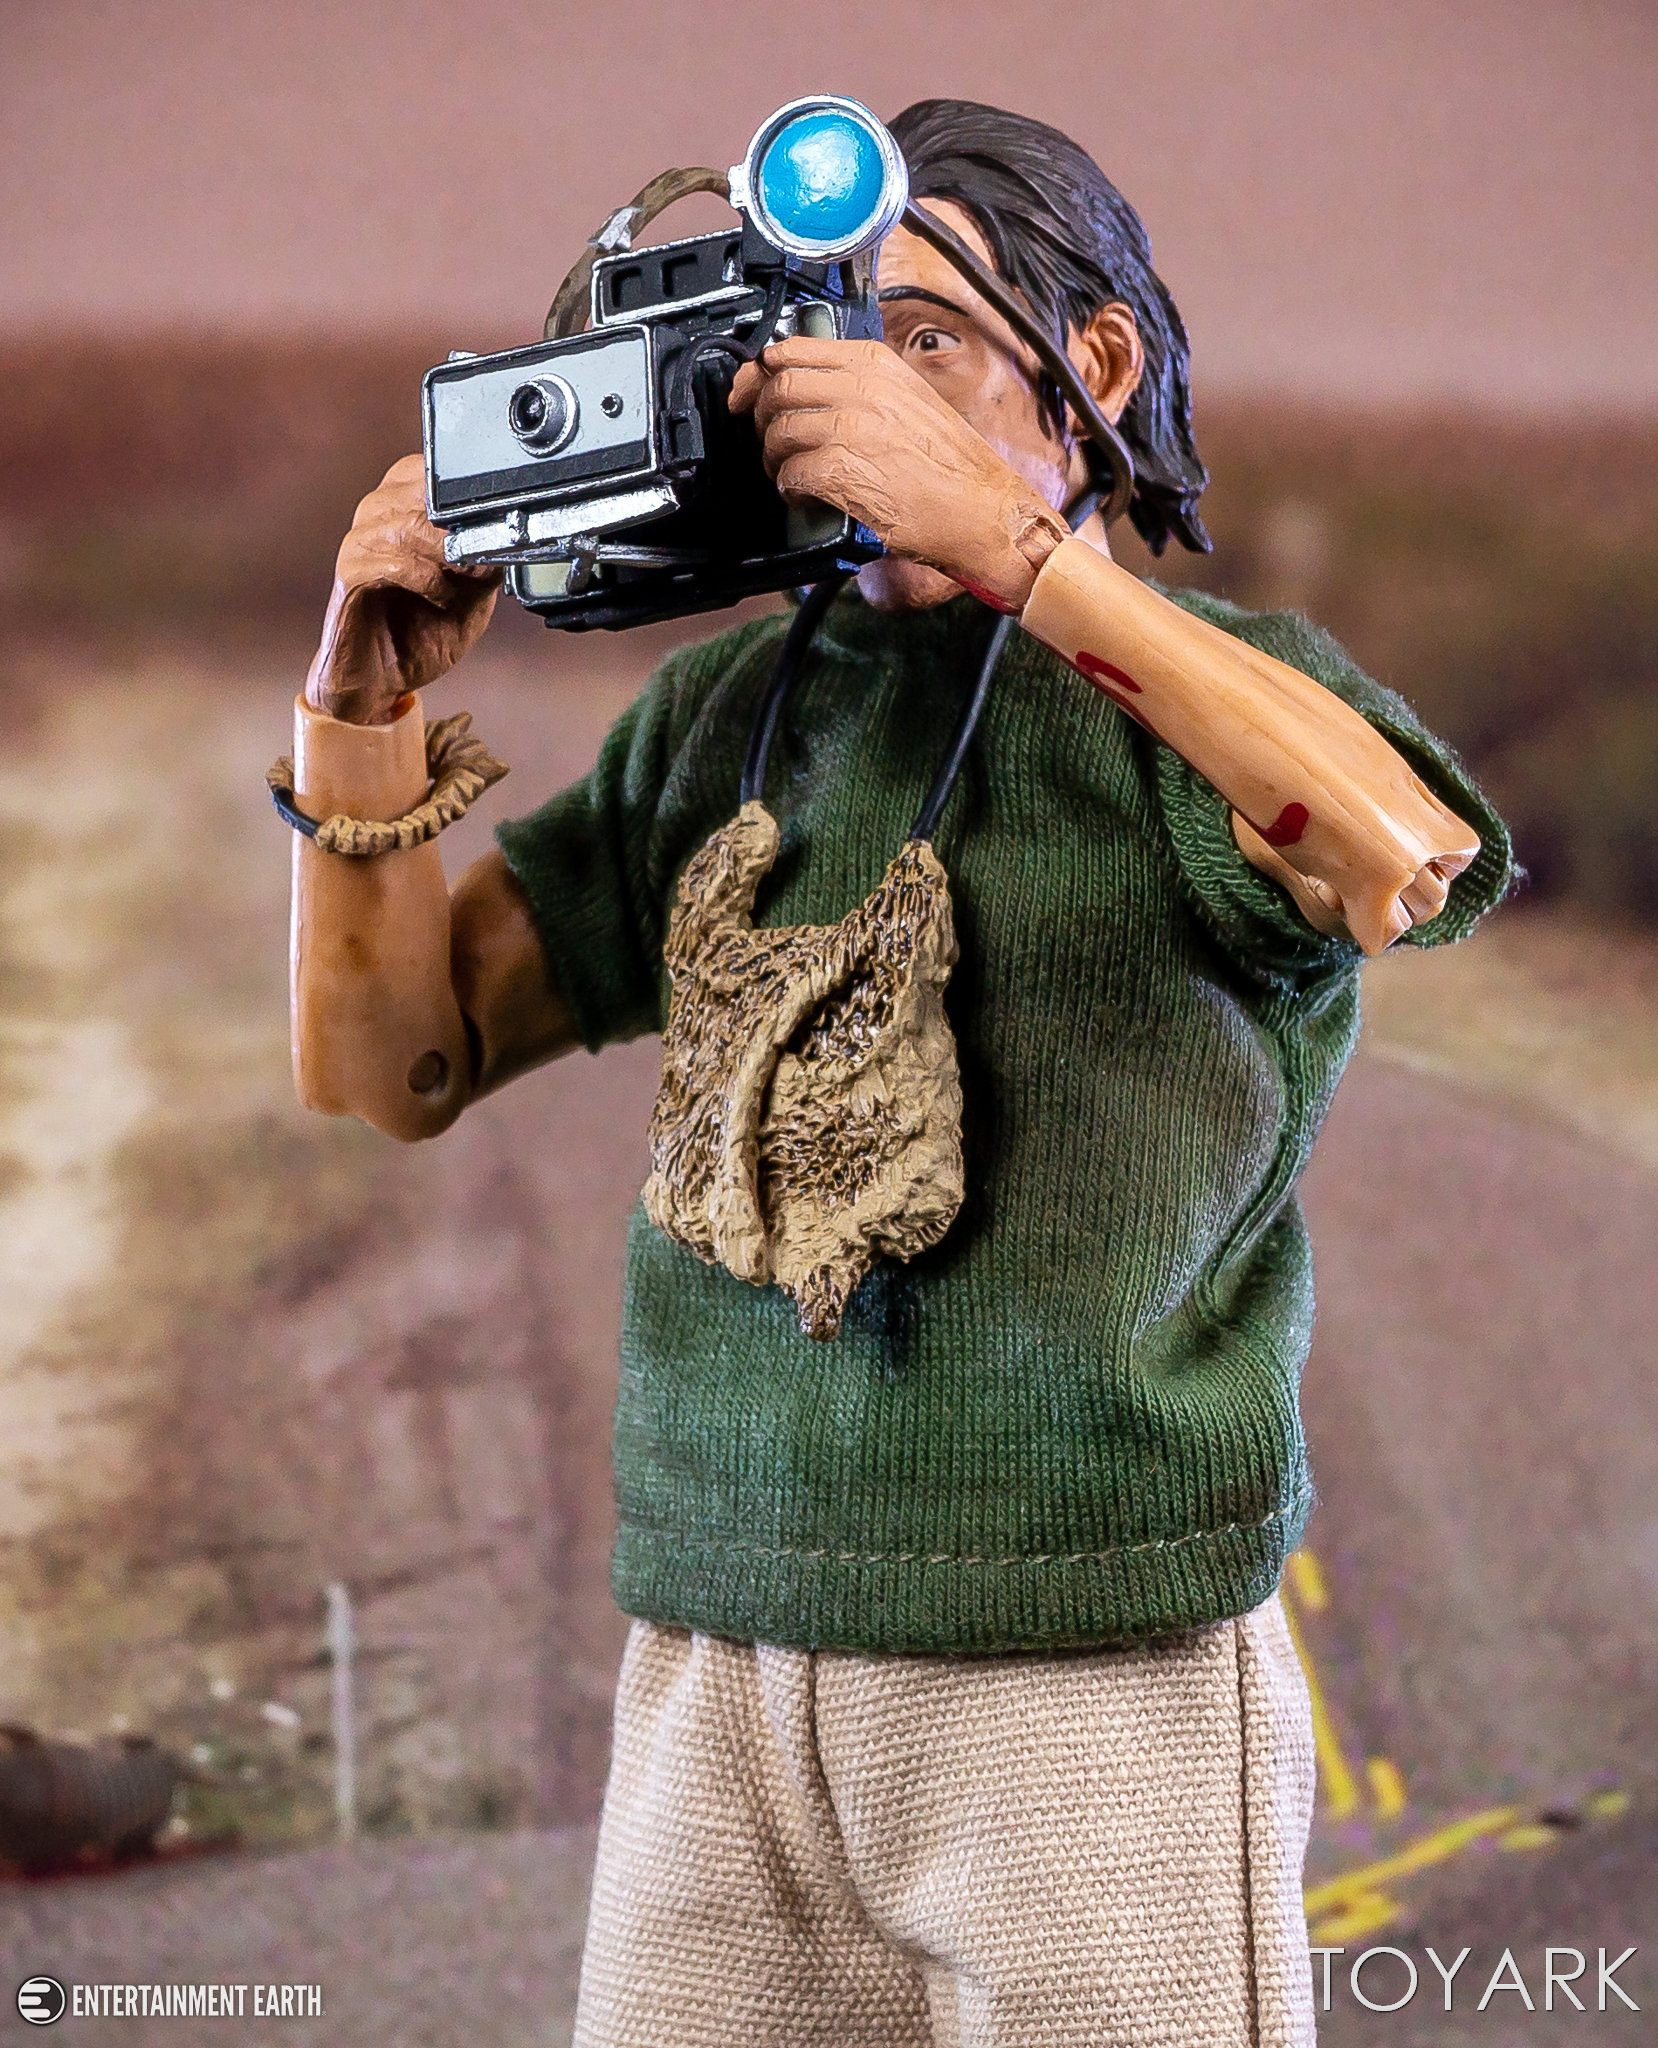 http://news.toyark.com/wp-content/uploads/sites/4/2018/04/Texas-Chainsaw-Nubbins-Set-NECA-020.jpg